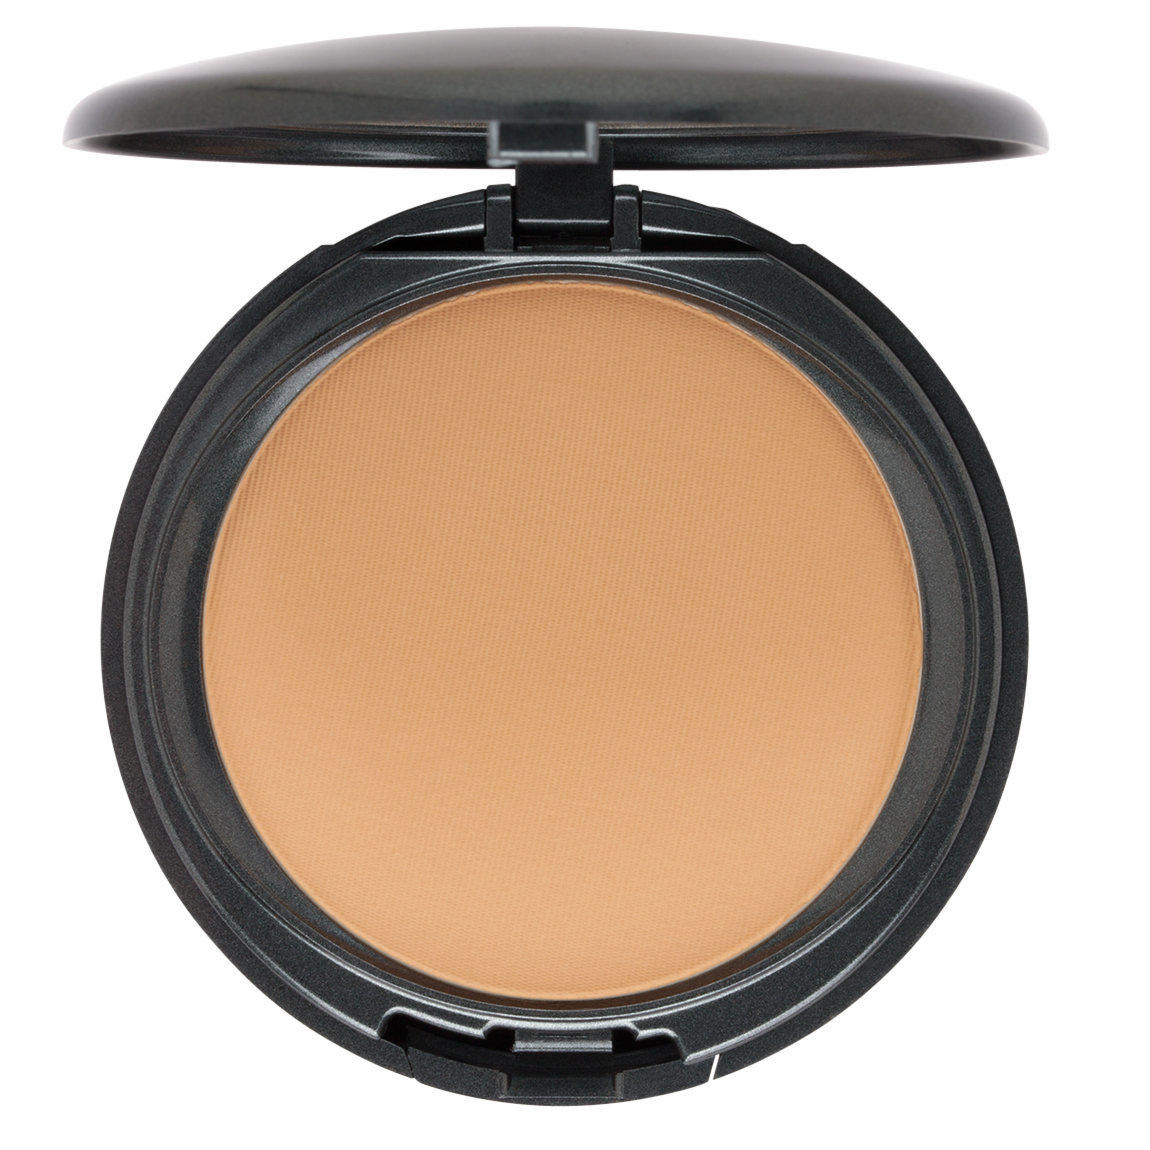 Cover FX Pressed Mineral Foundation G+40